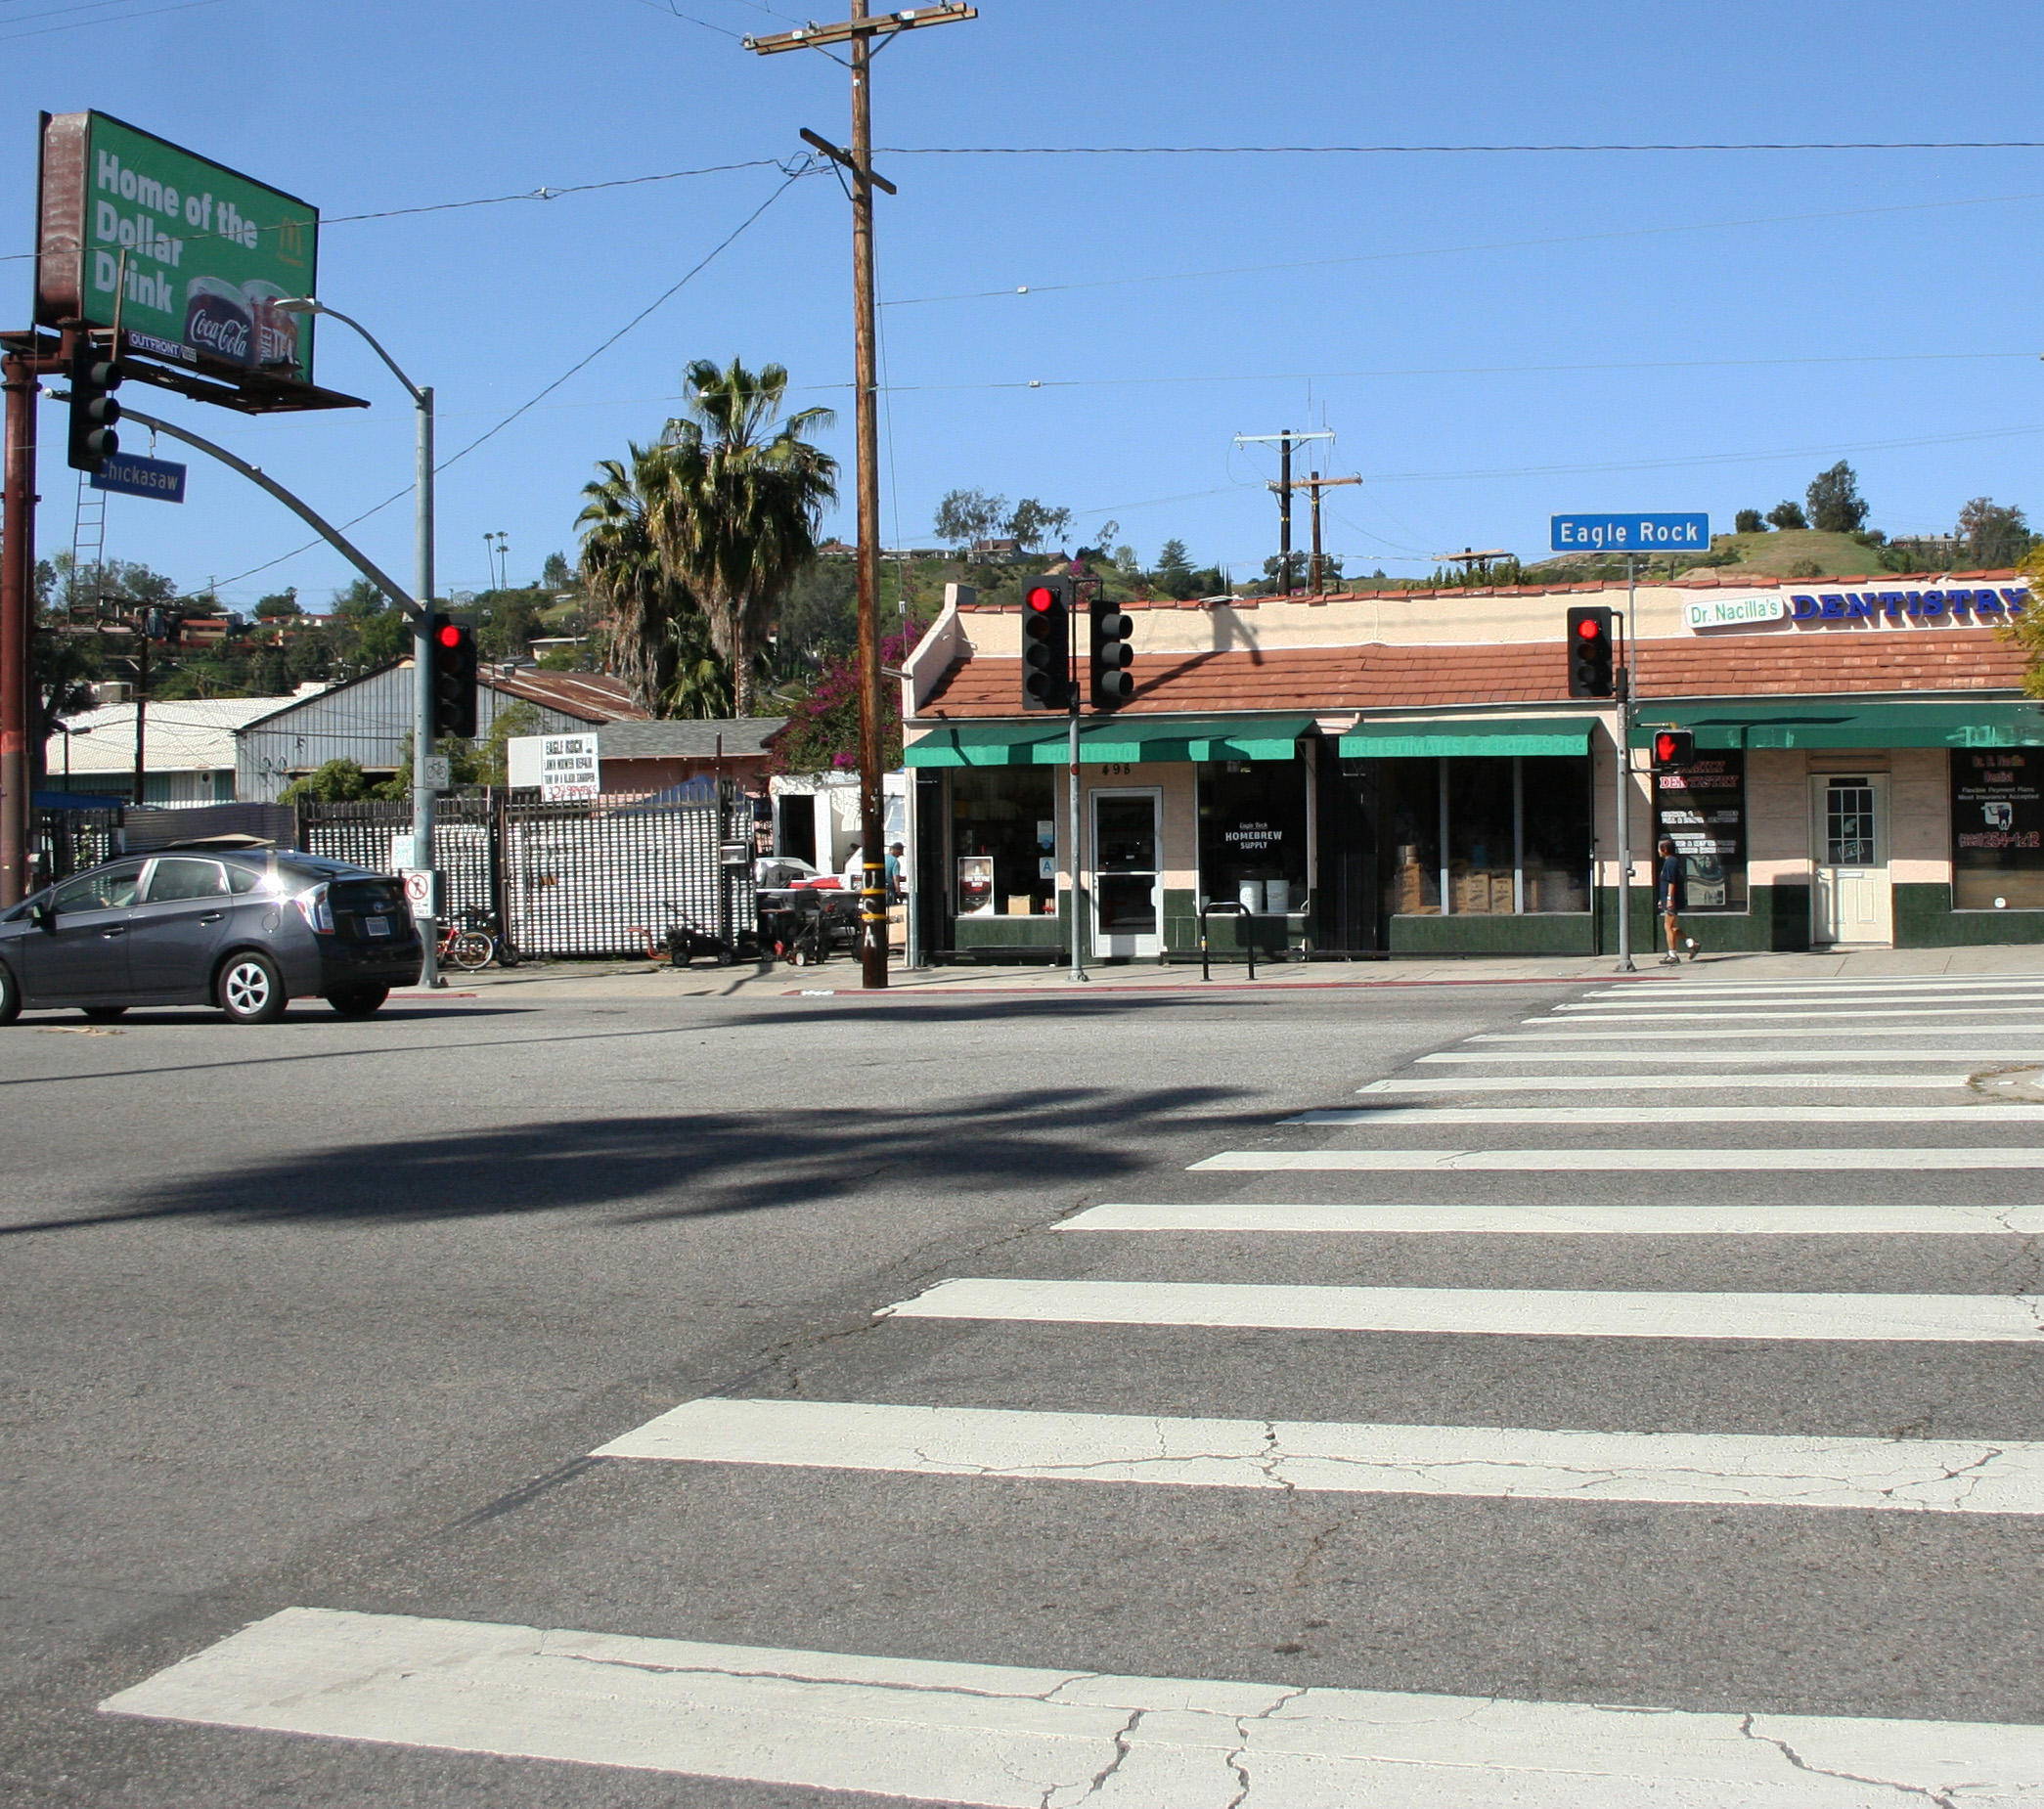 eagle_rock_home_brewing_location_1.jpg